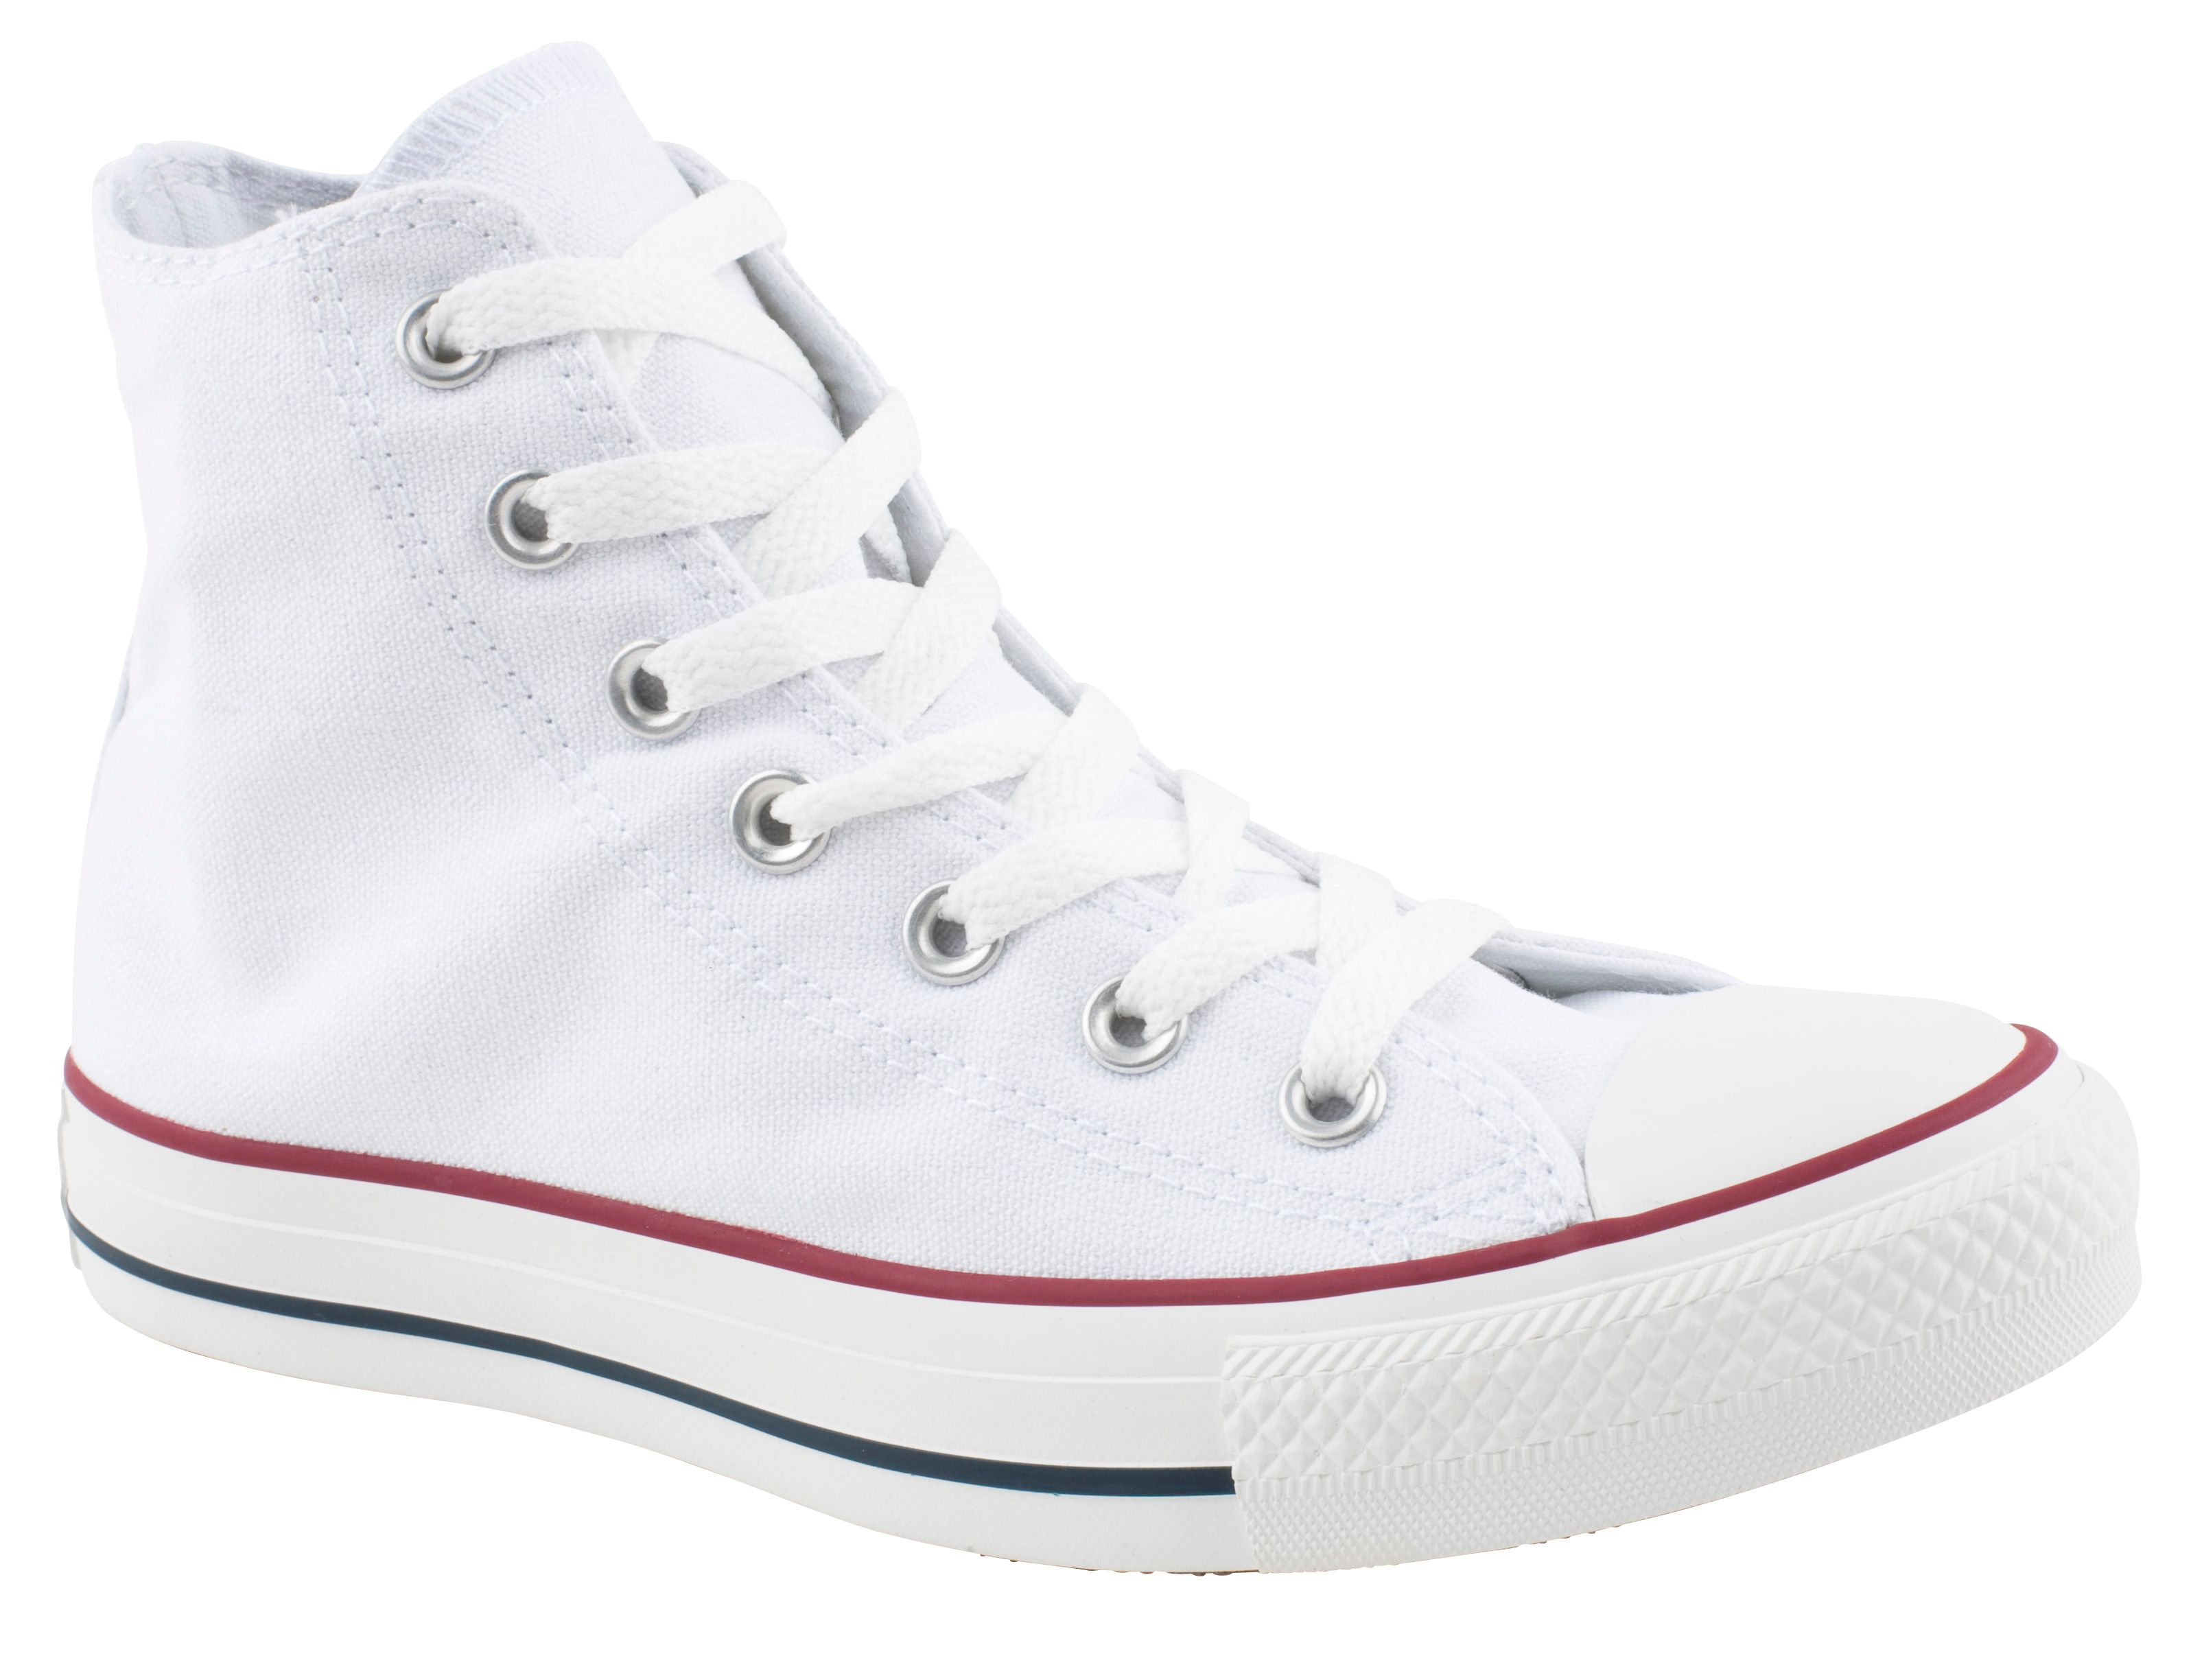 Chuck taylor all star high-top canvas trainers